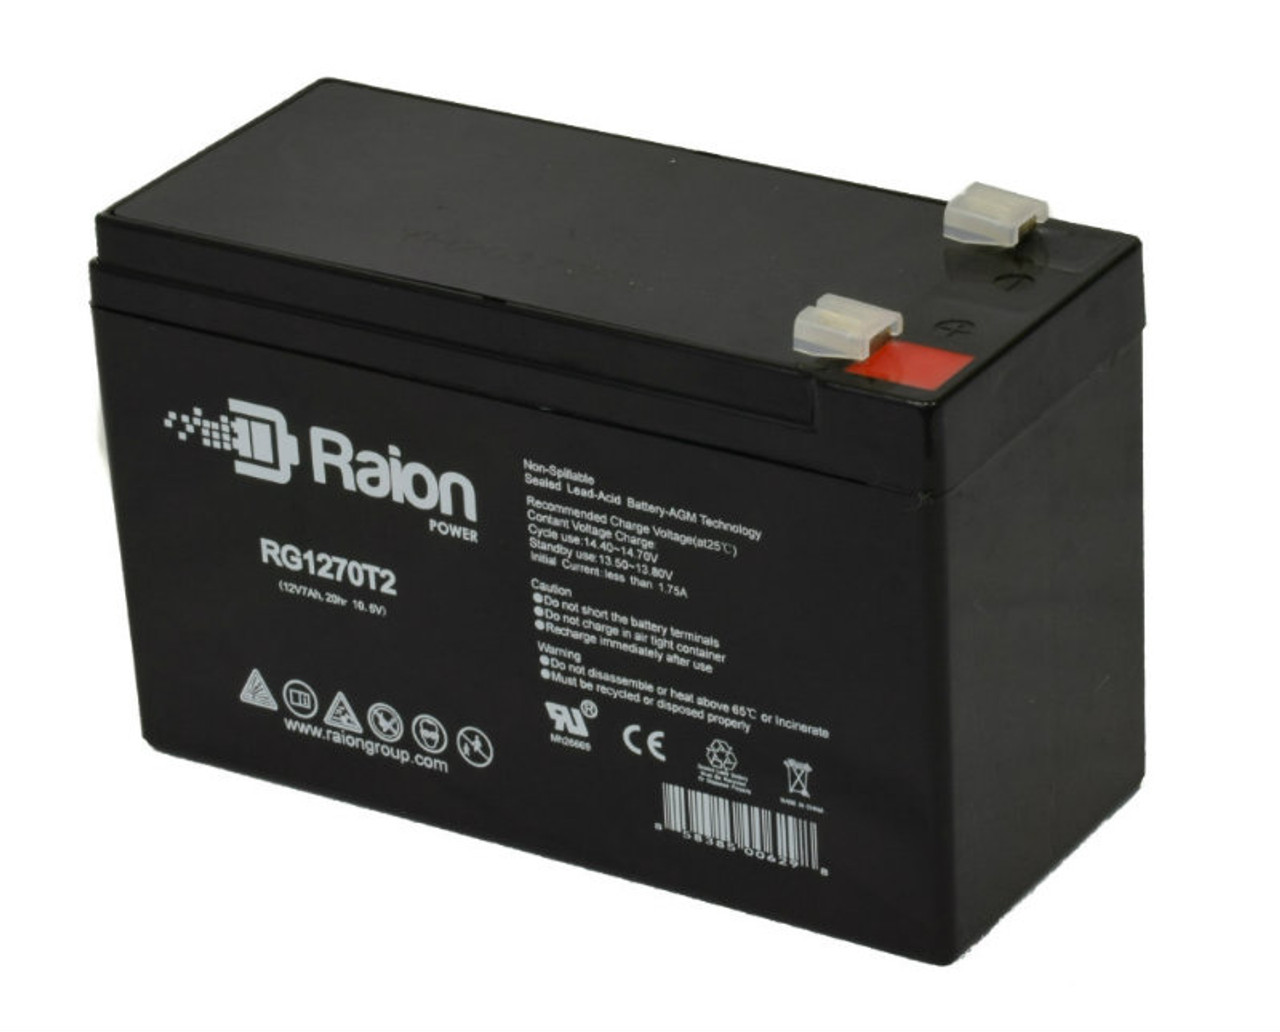 Raion Power RG1270T1 Replacement Battery for B&B Battery EVP7-12-F1